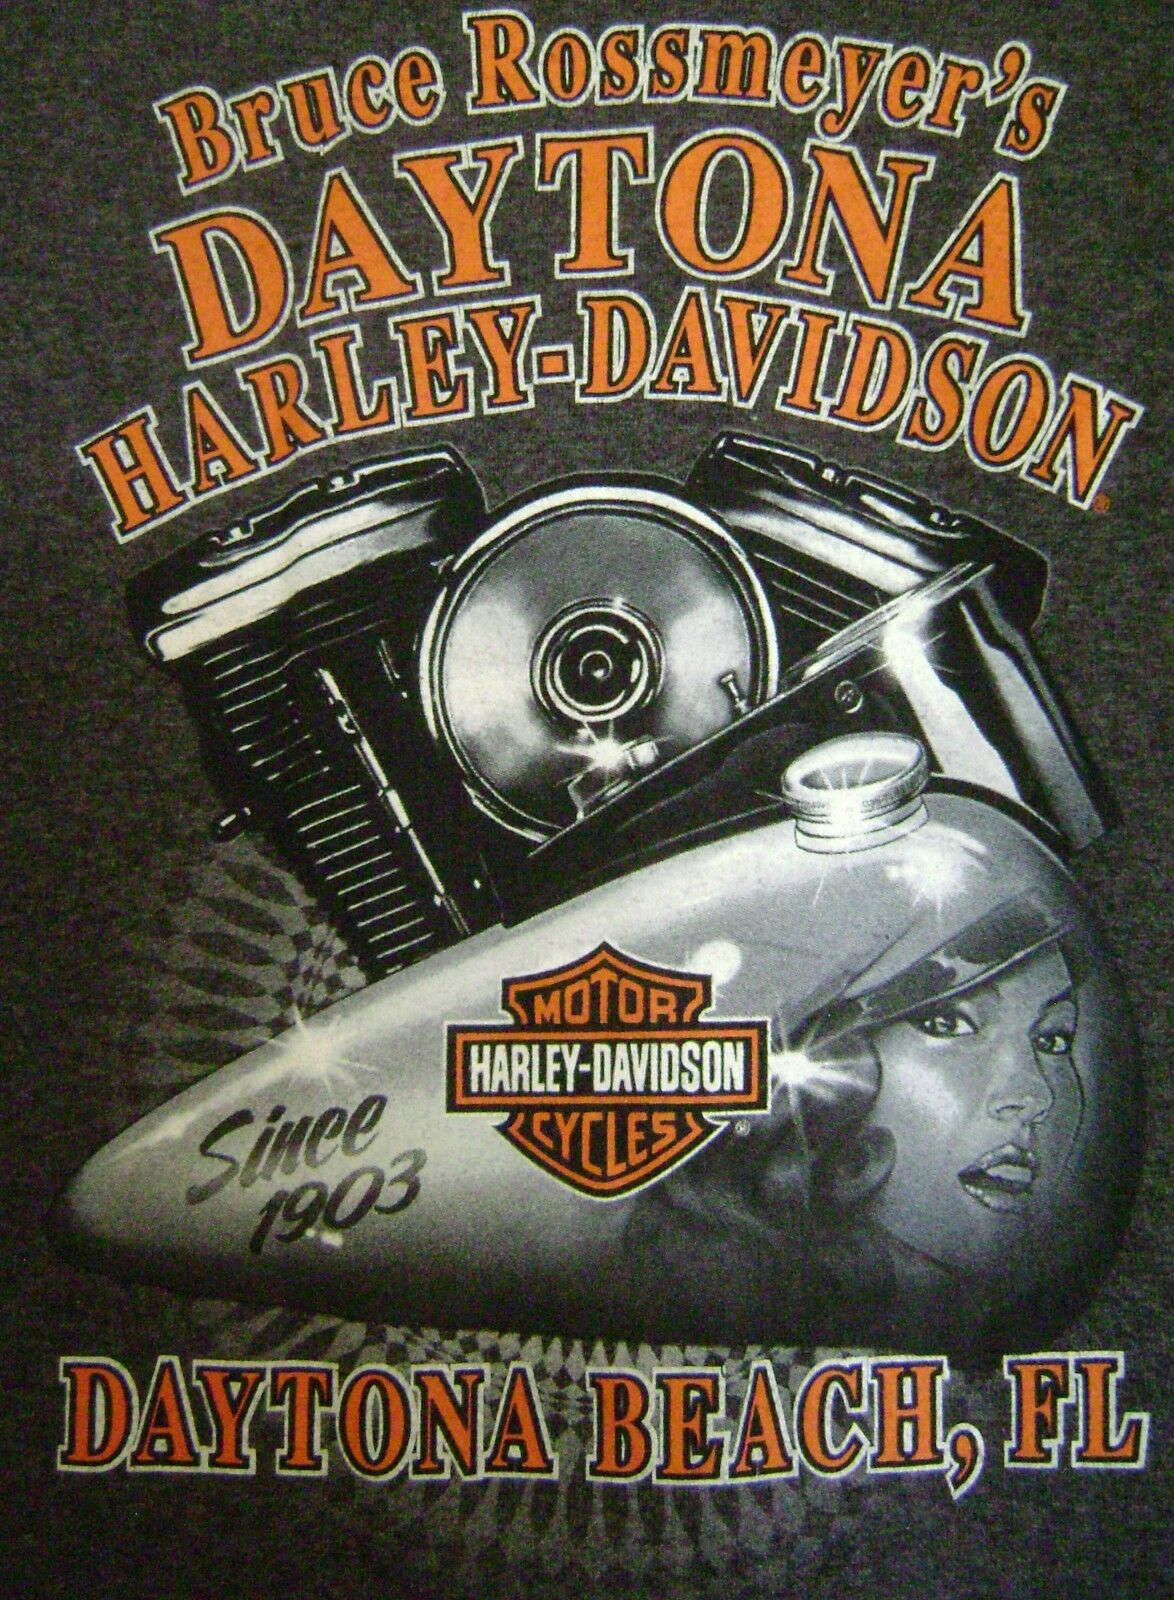 Daytona Beach Harley Davidson T Shirt Rossmeyer S Motorcycle Sleeveless Small 1 Of 4only Available